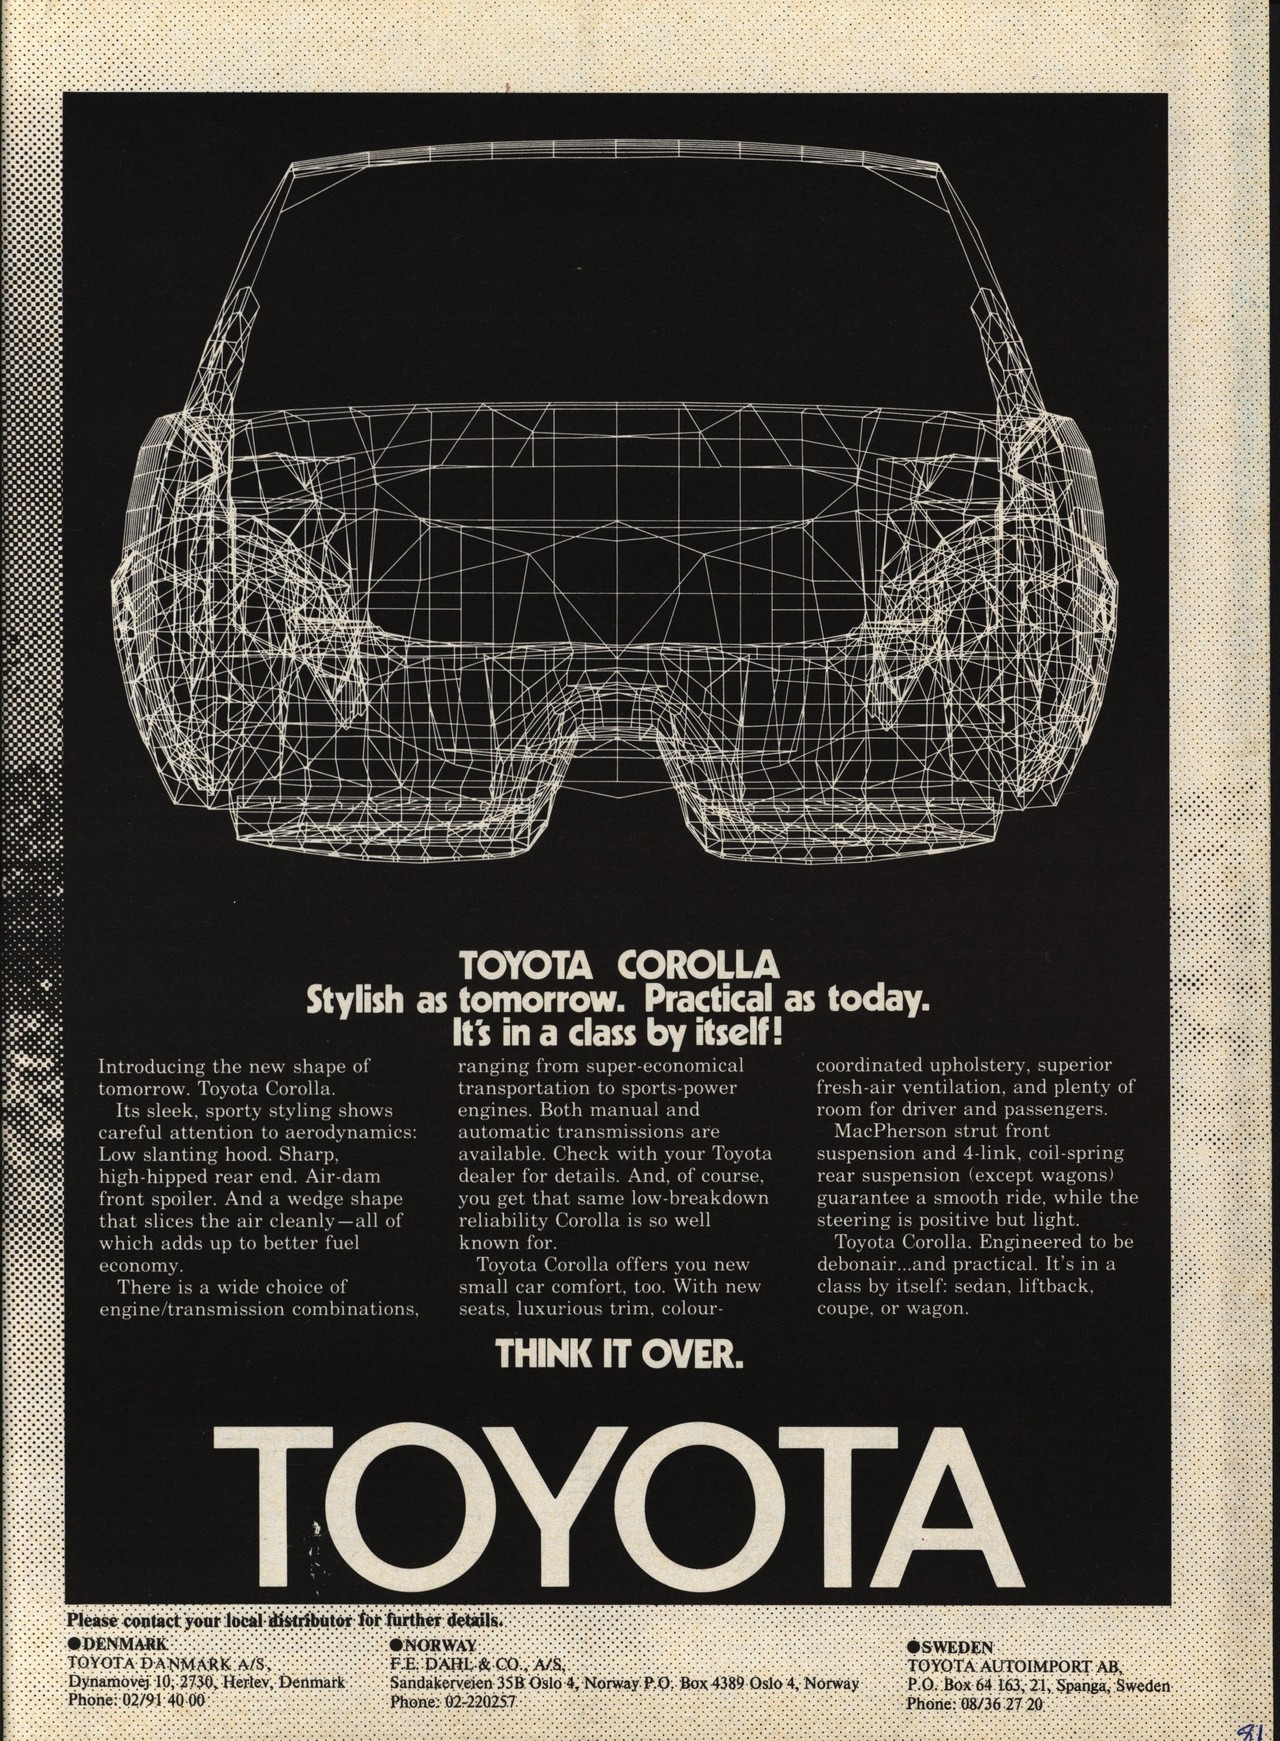 1981 Toyota Corolla Ad Featuring 3d Wireframe Vintage Cars Luggage Compartment Light Wiring Diagram For 1956 Studebaker Passenger Car